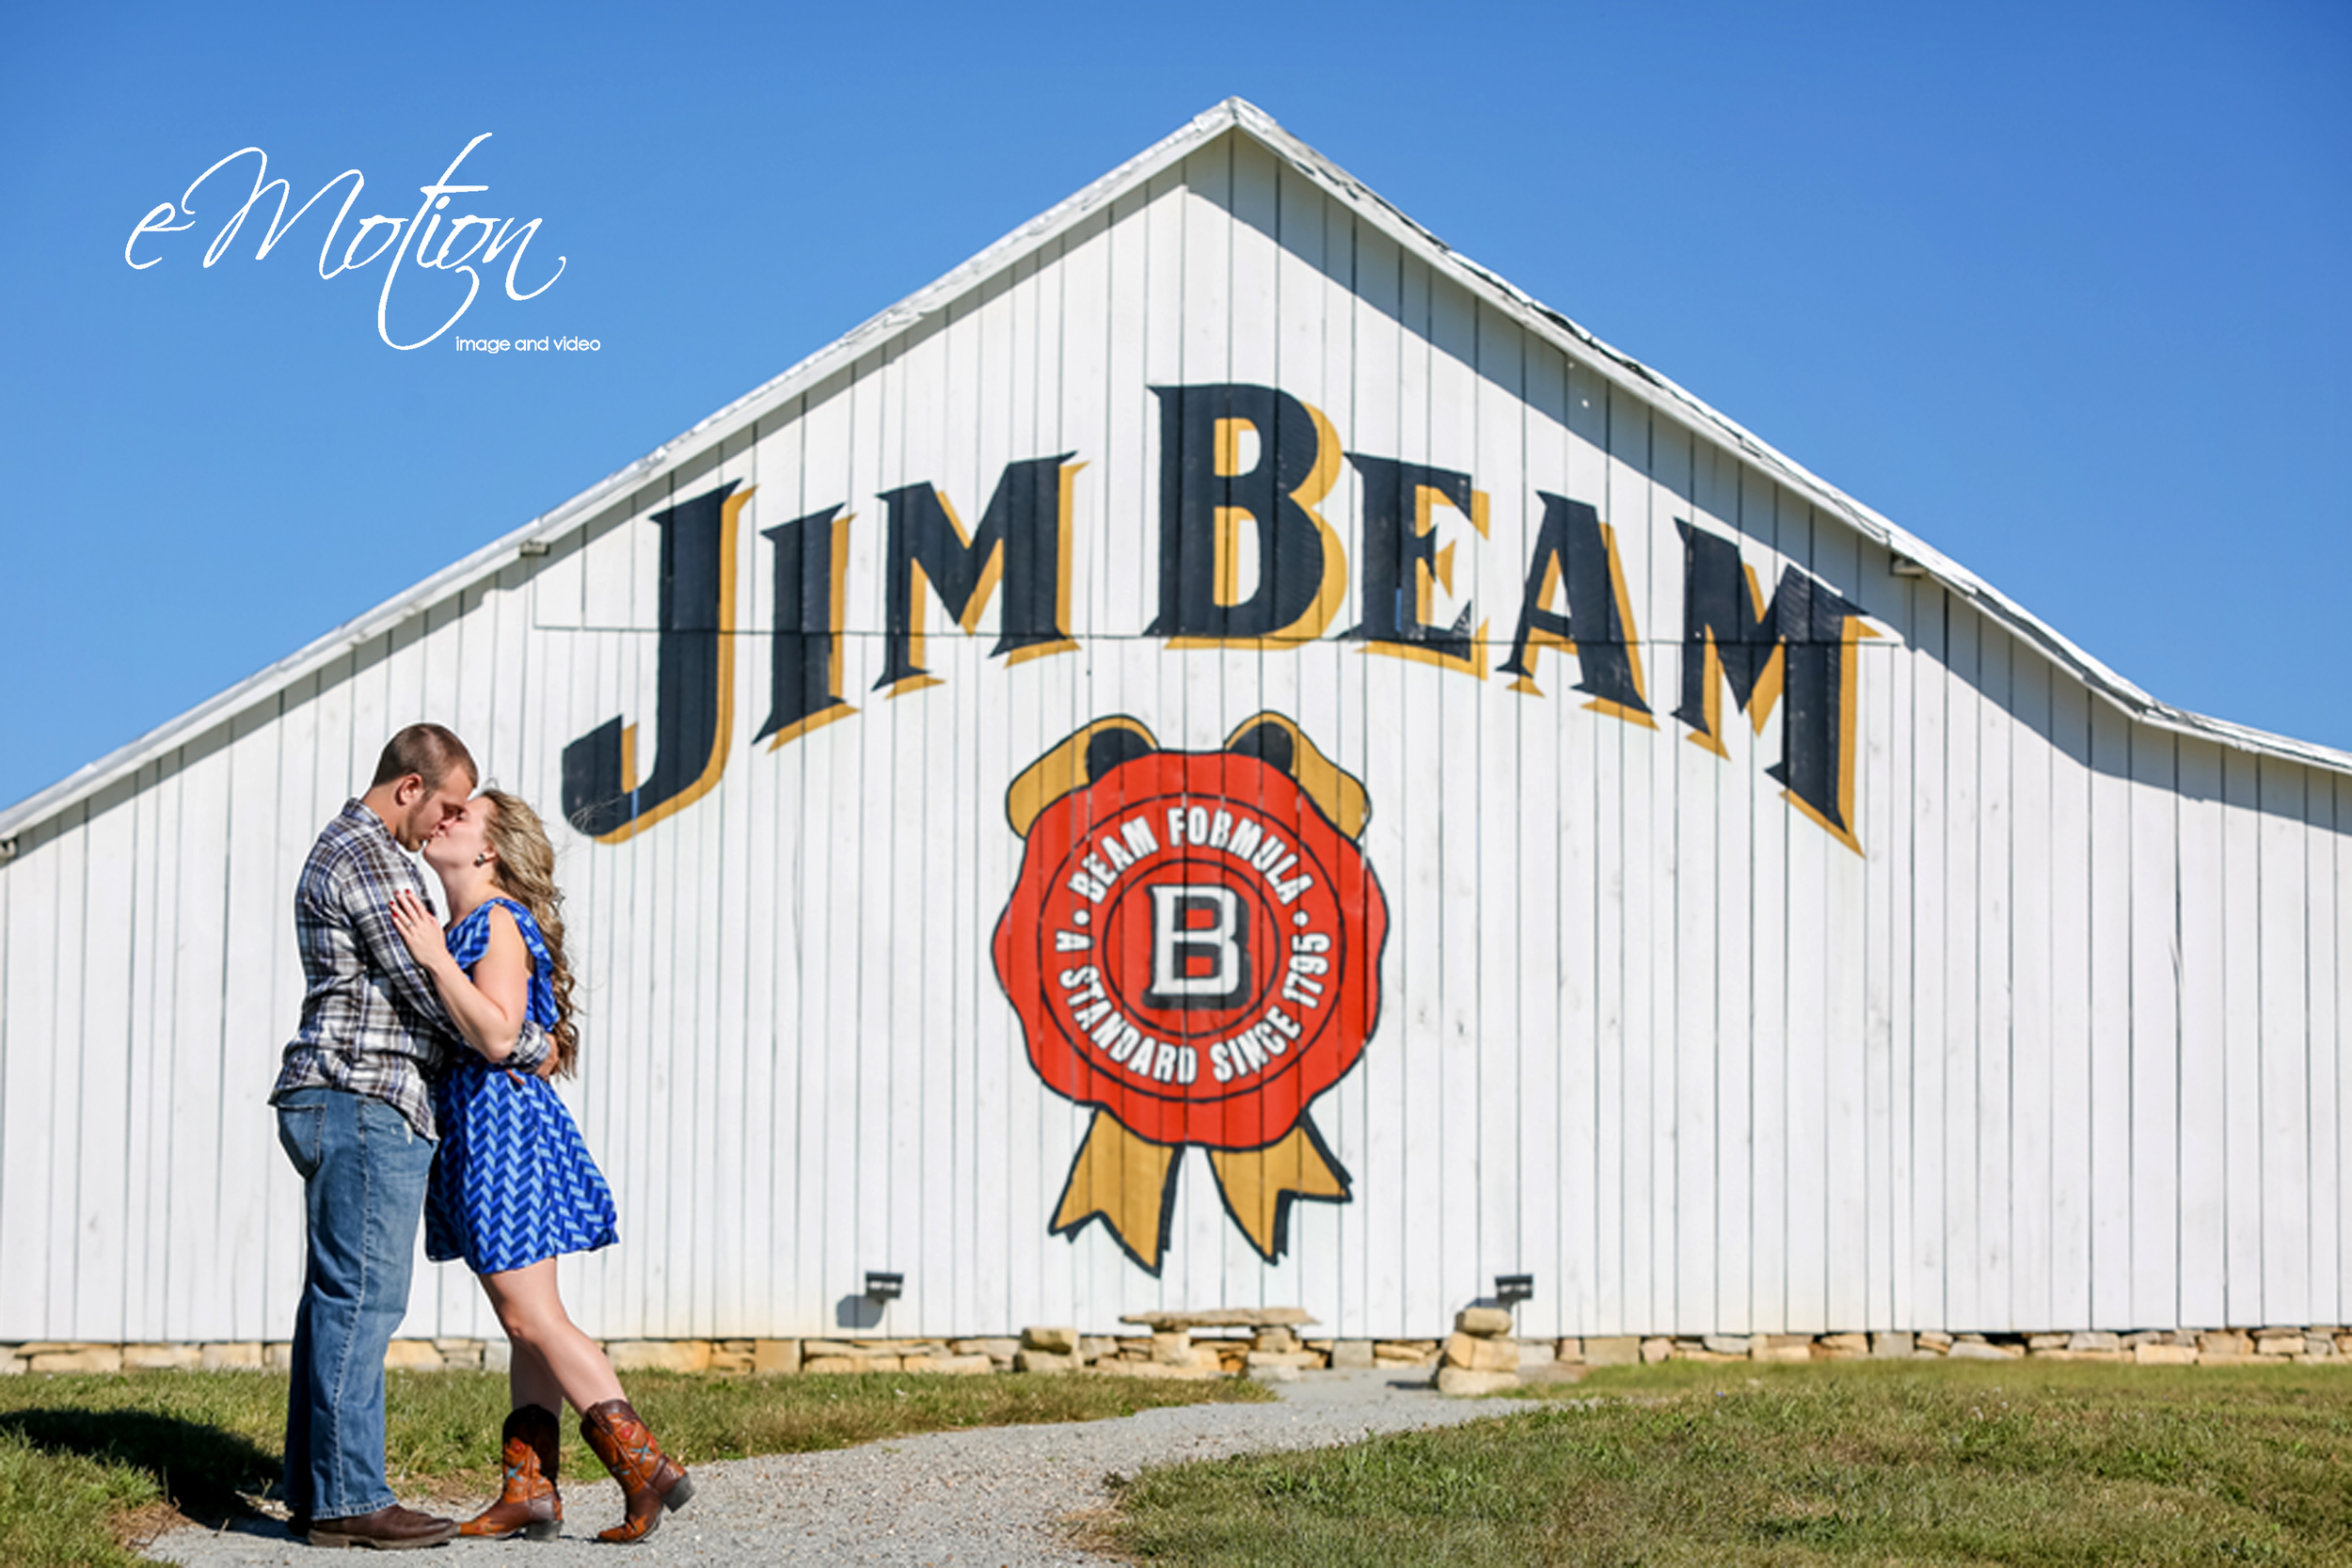 Jim Beam Engagement Photos eMotion image and video